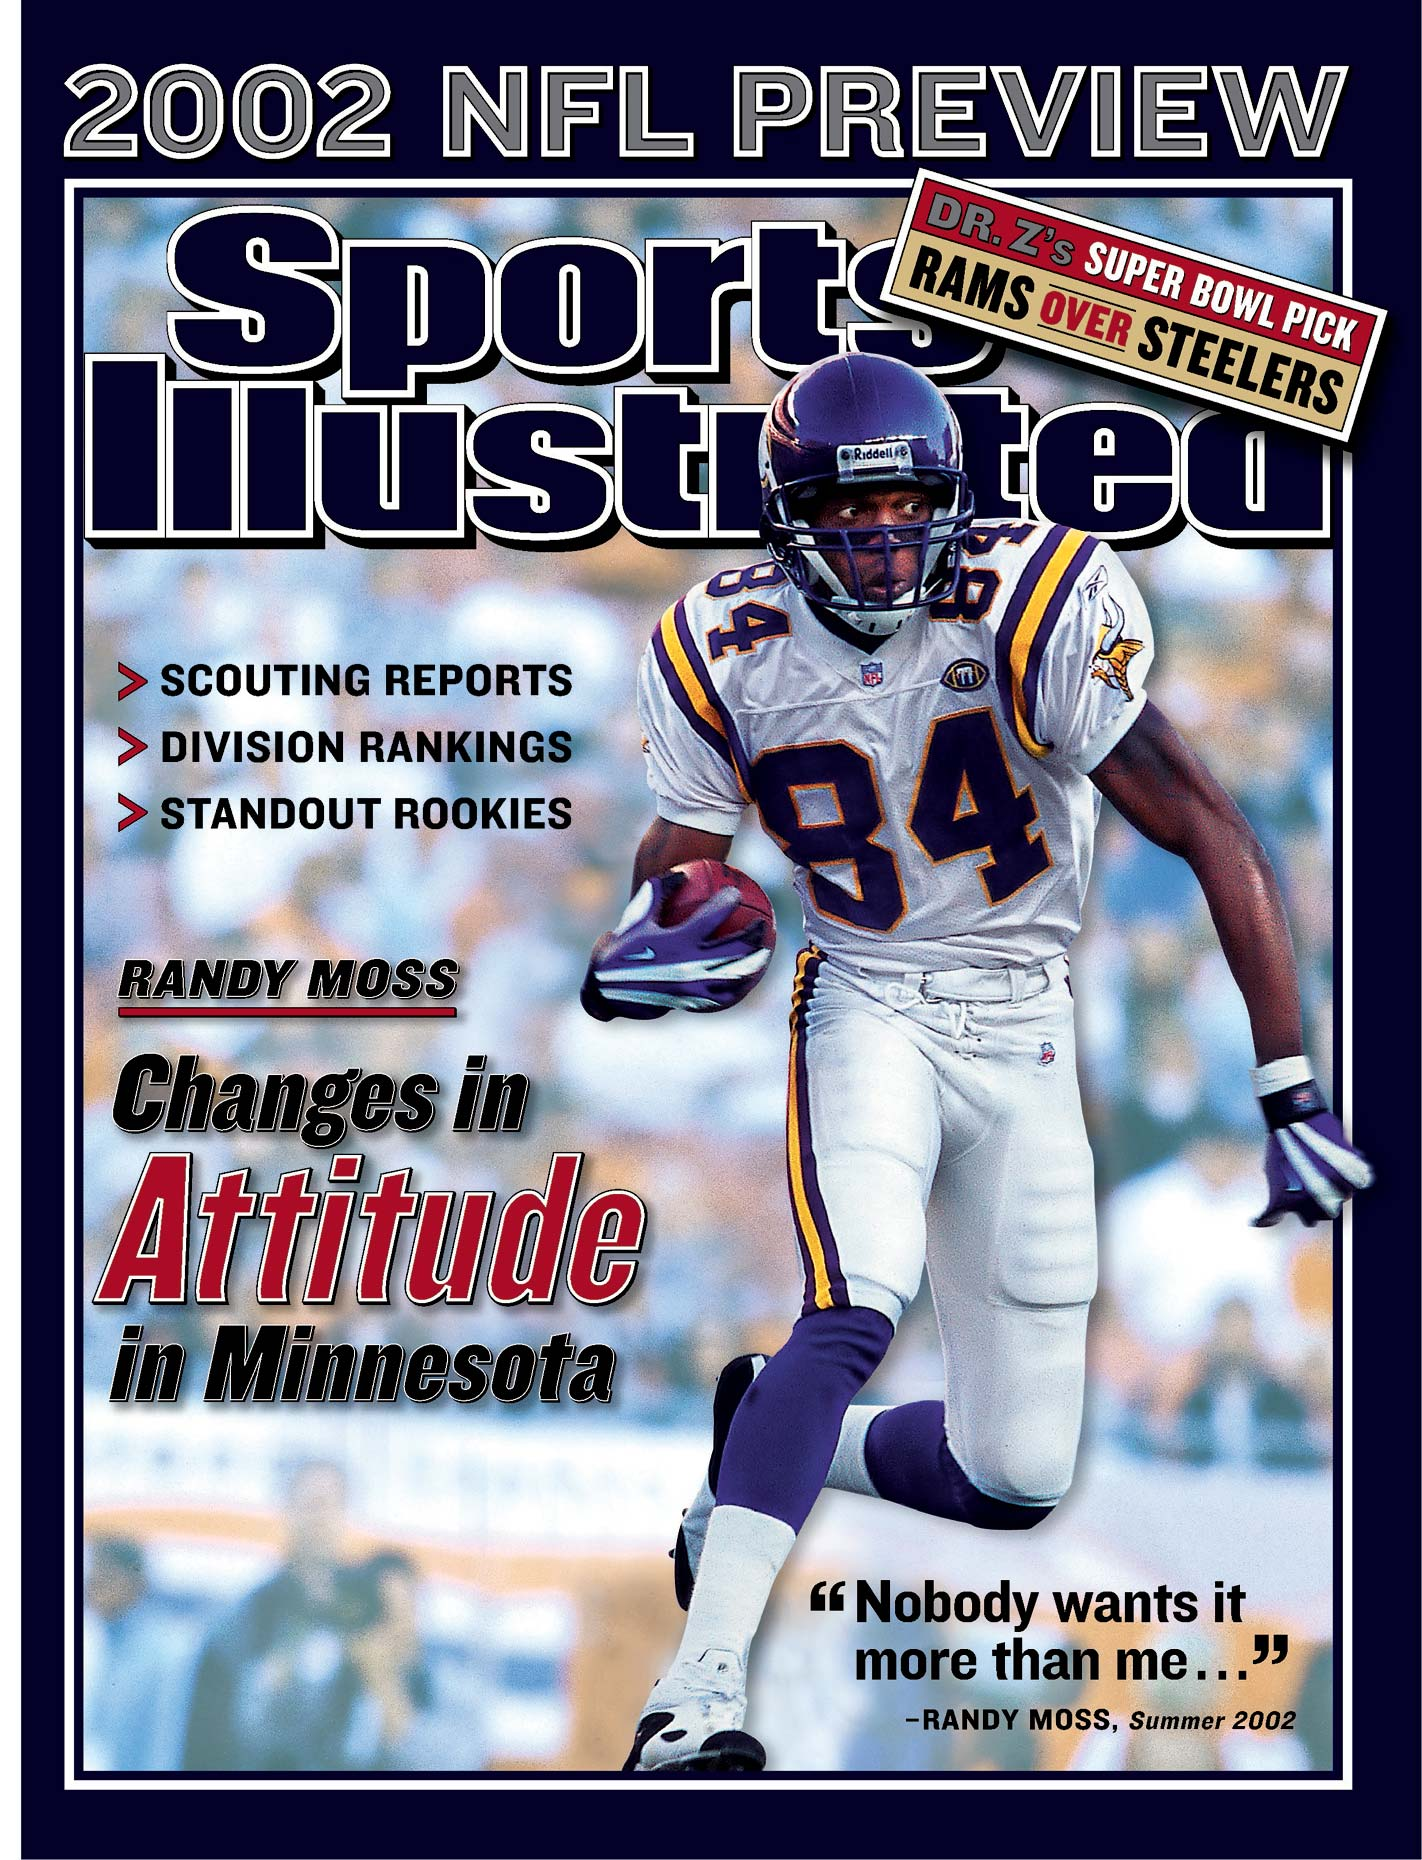 Minnesota Vikings receiver Randy Moss on the cover of Sports Illustrated.